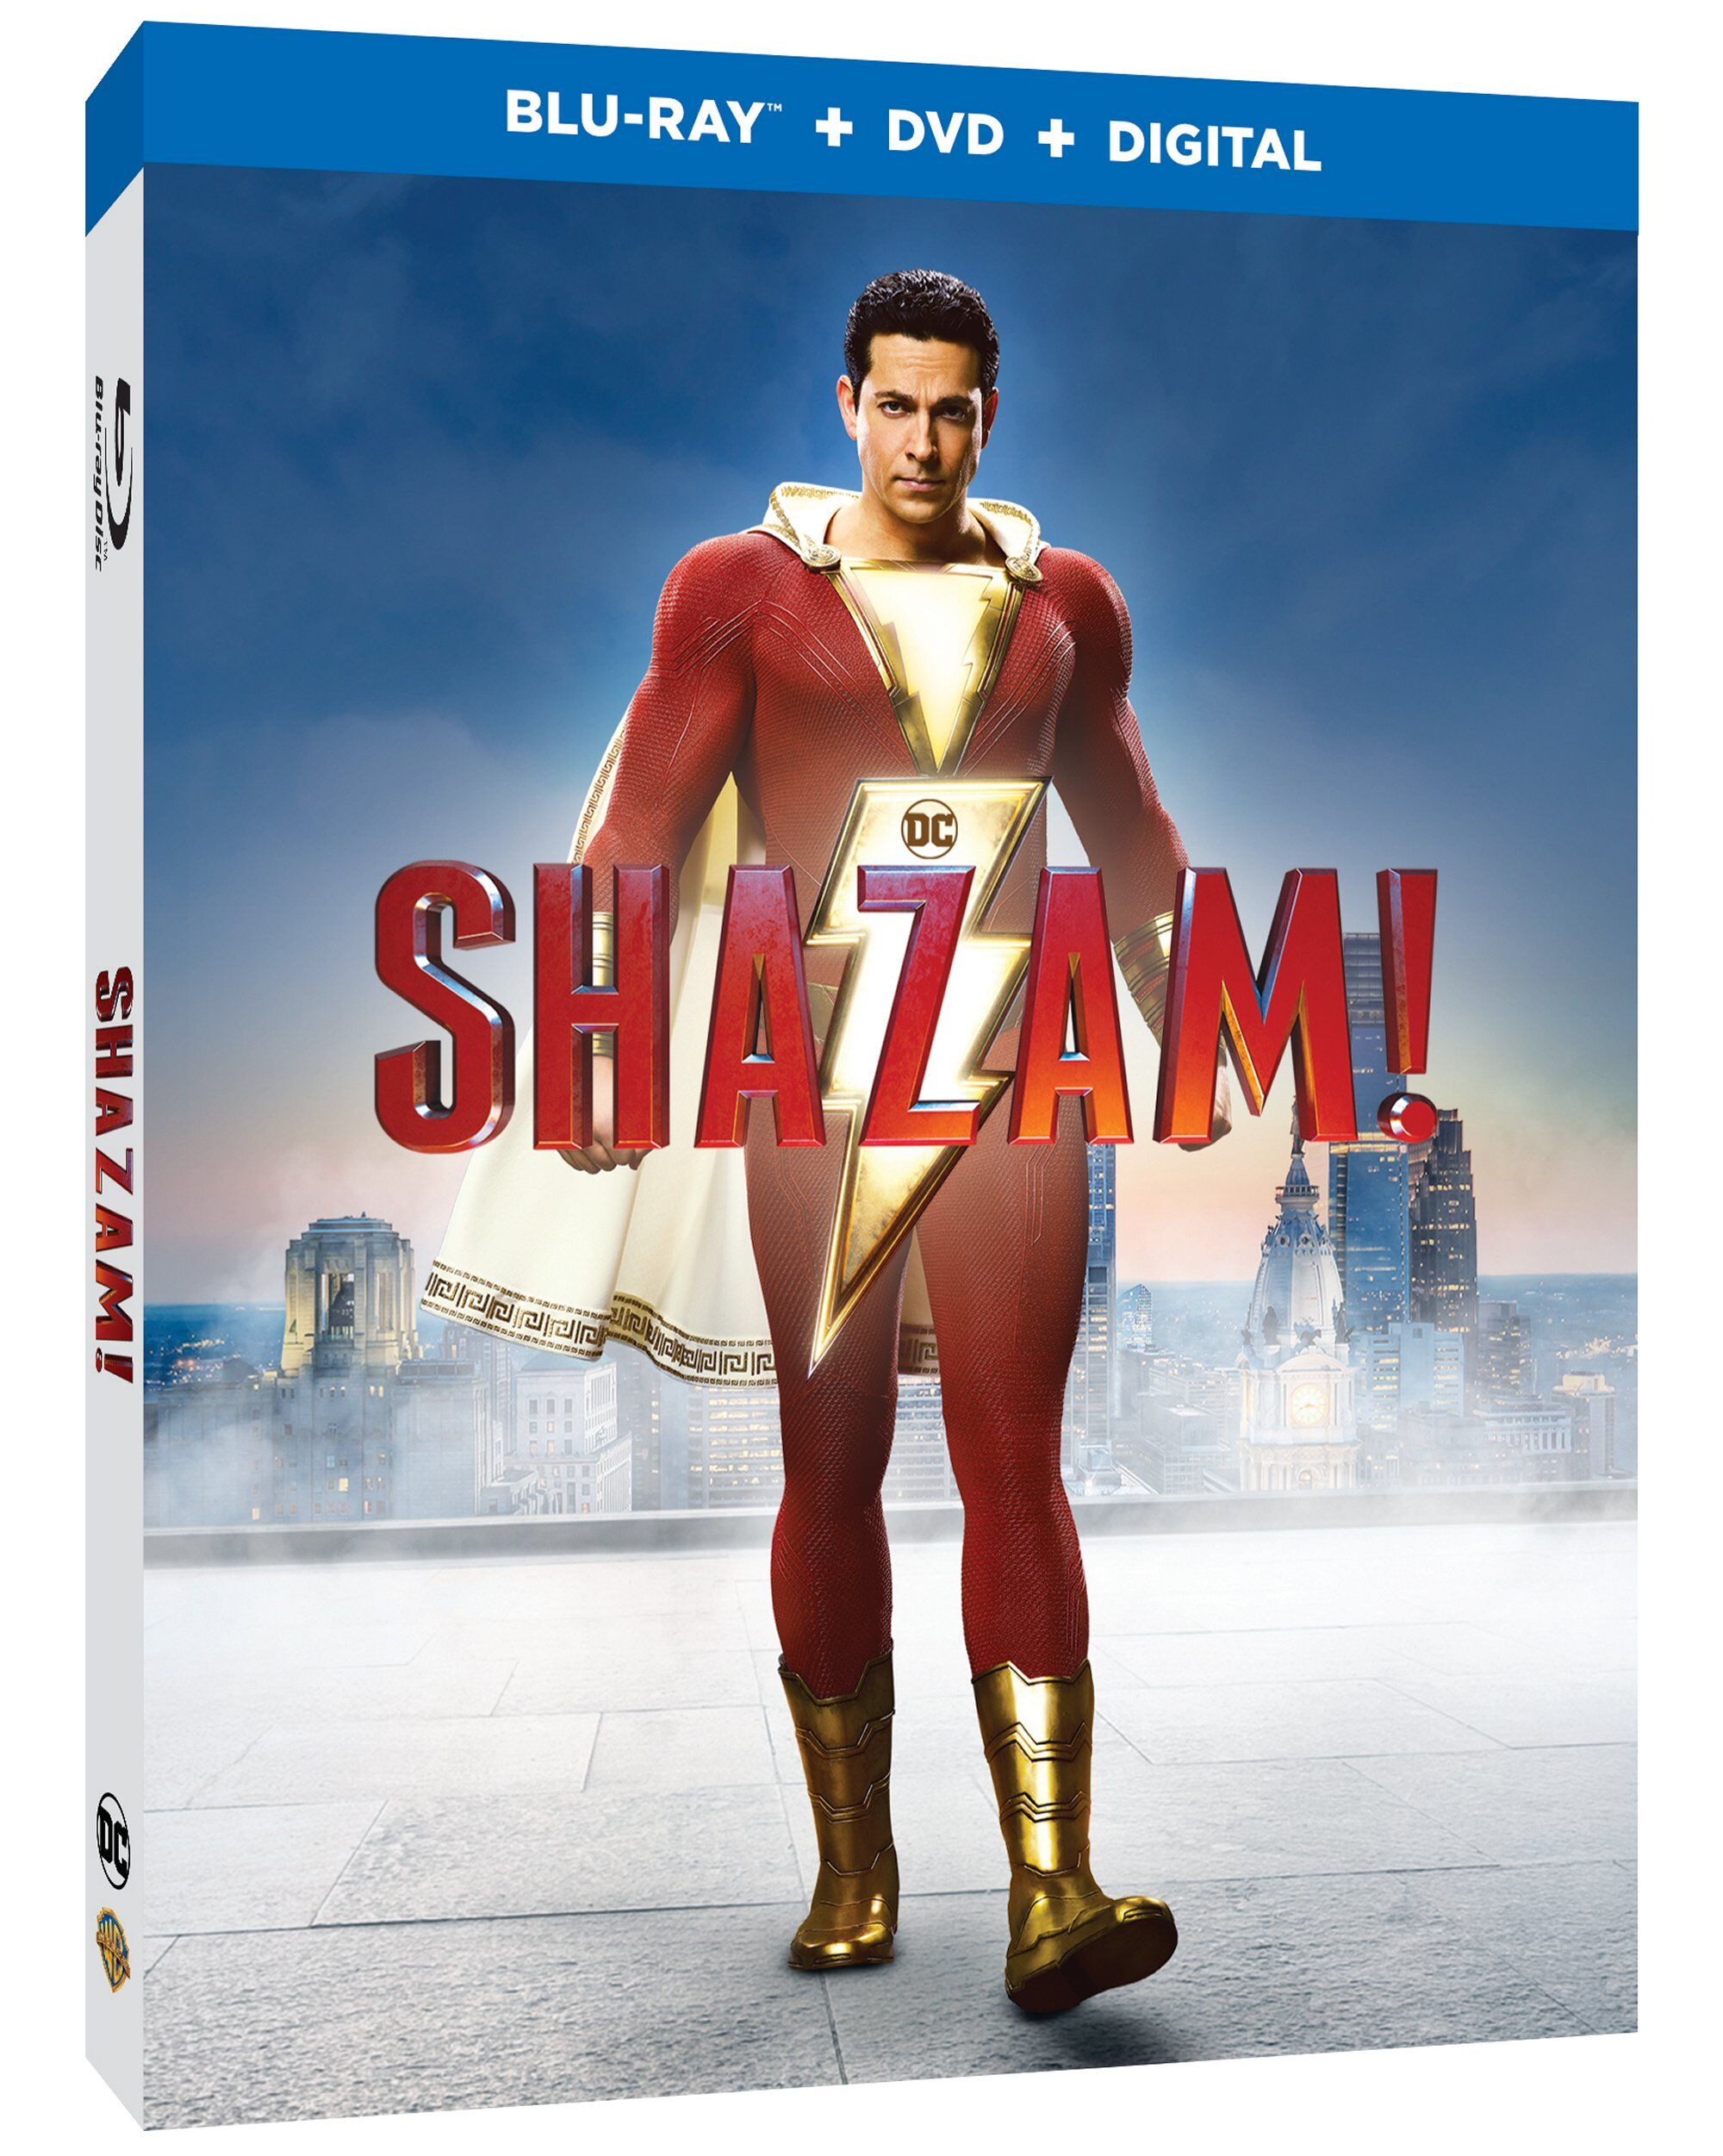 Shazam! Blu-ray Review